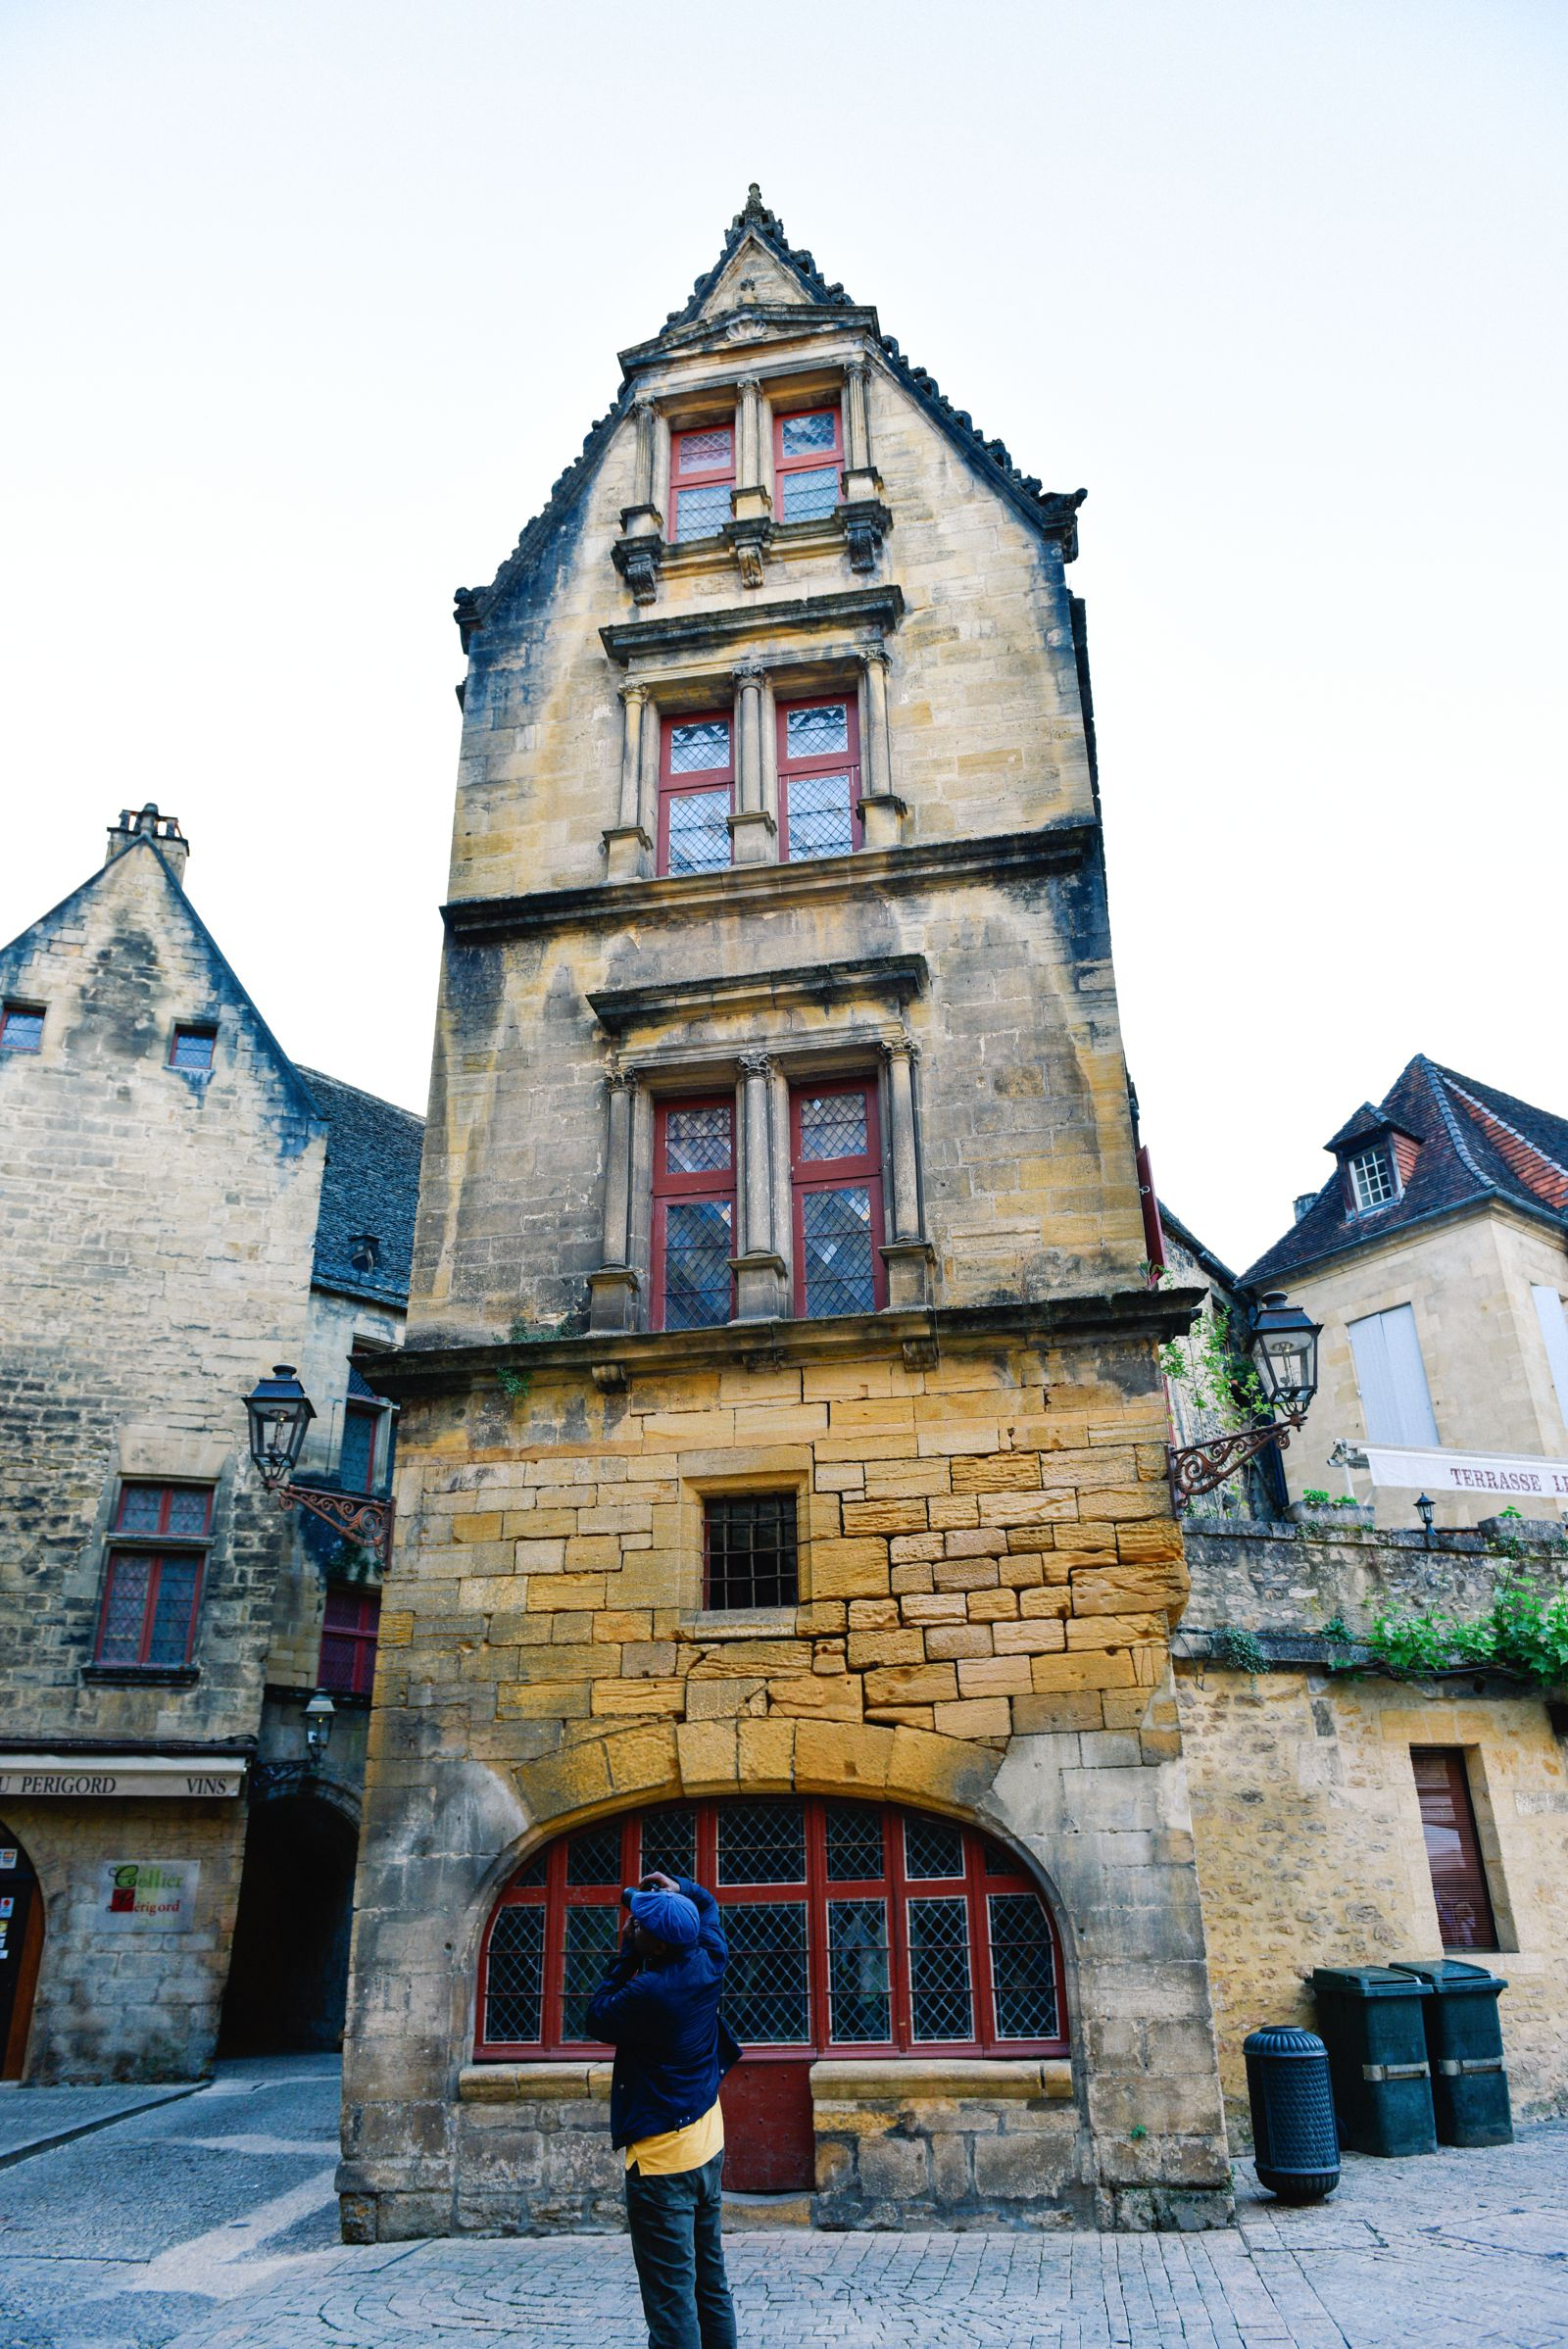 The Old Historic French Town Of Sarlat (13)